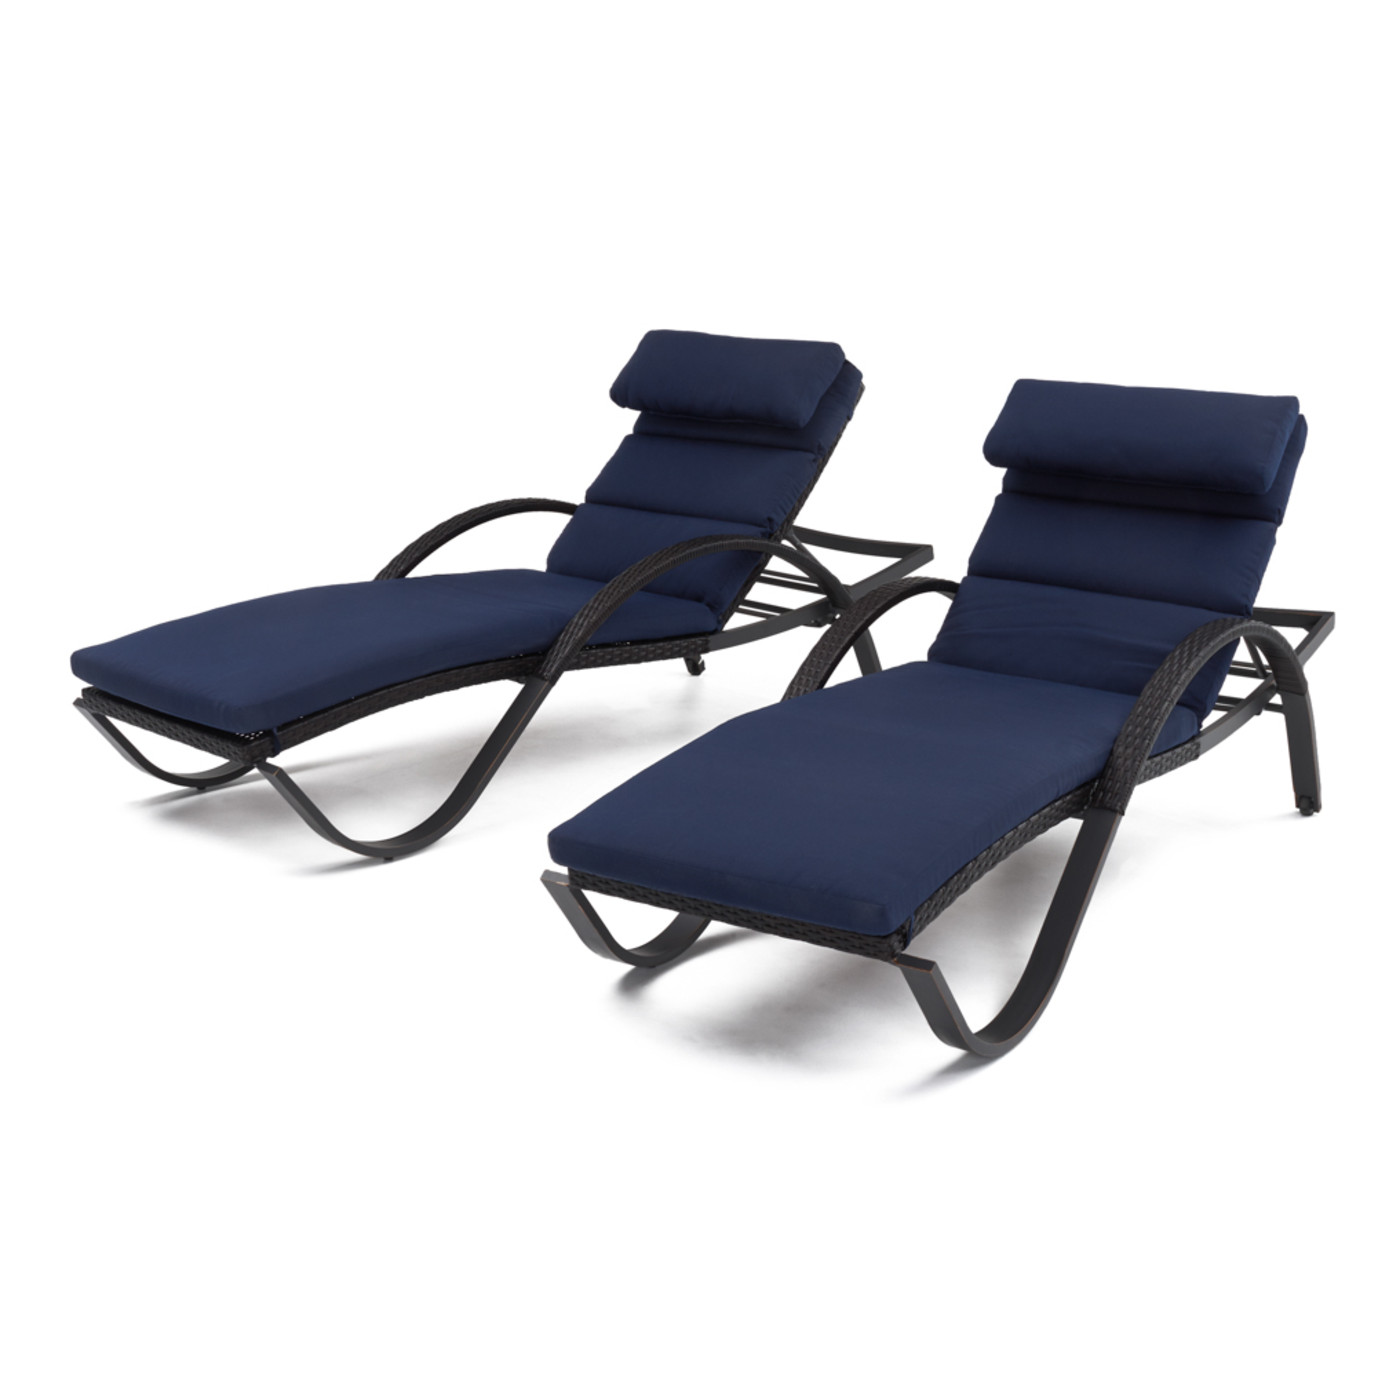 Deco chaise lounges with cushions navy blue rst brands for Blue chaise cushions